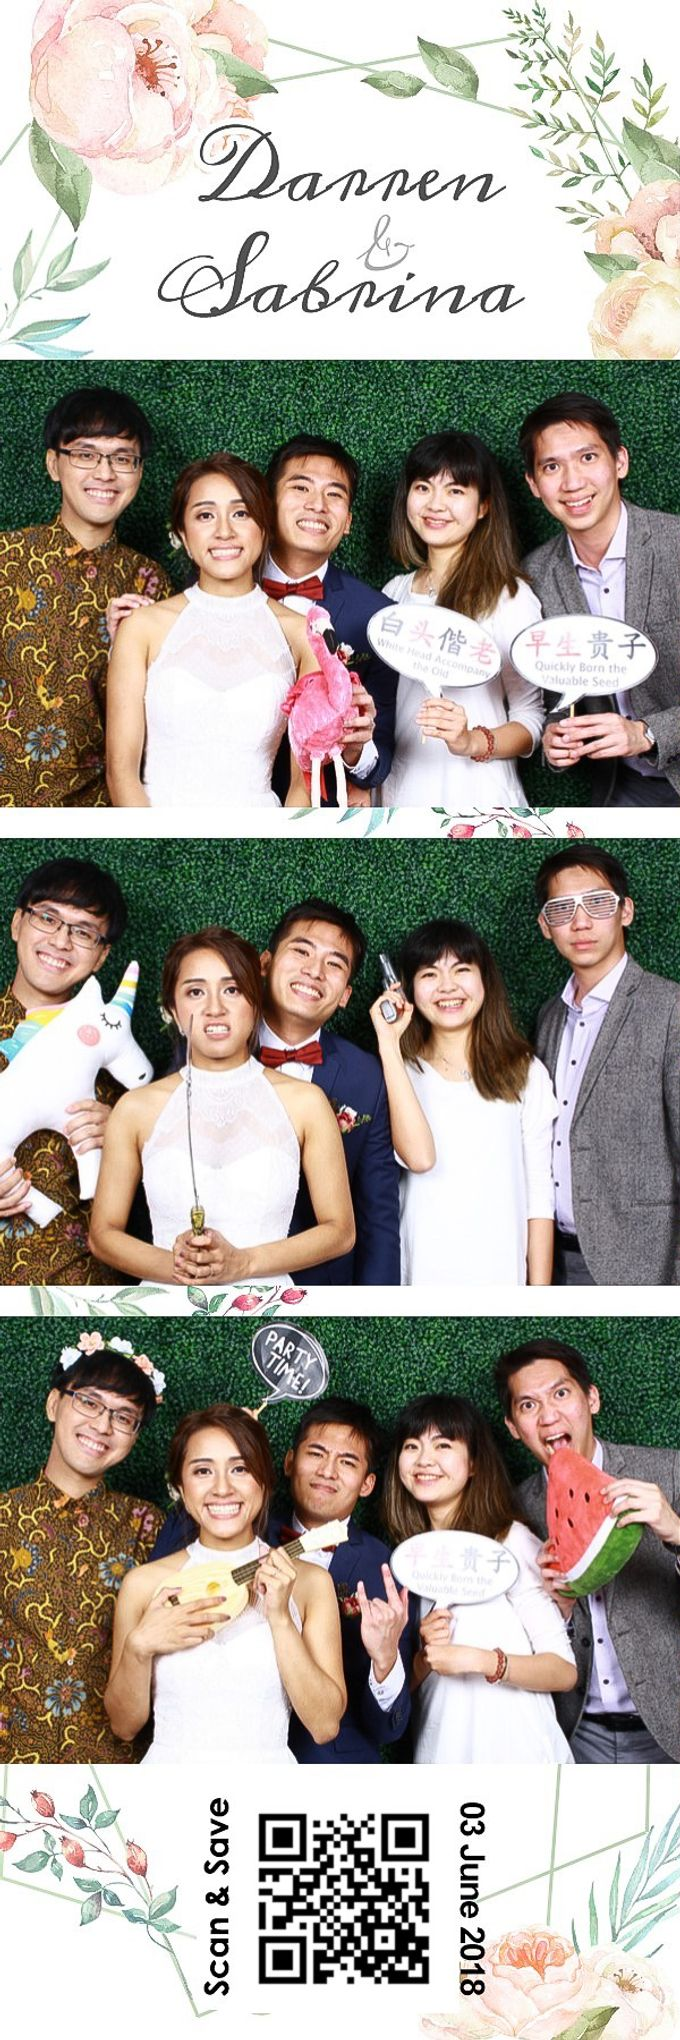 Darren & Sabrina Wedding Photo Booth by Cloud Booth - 002